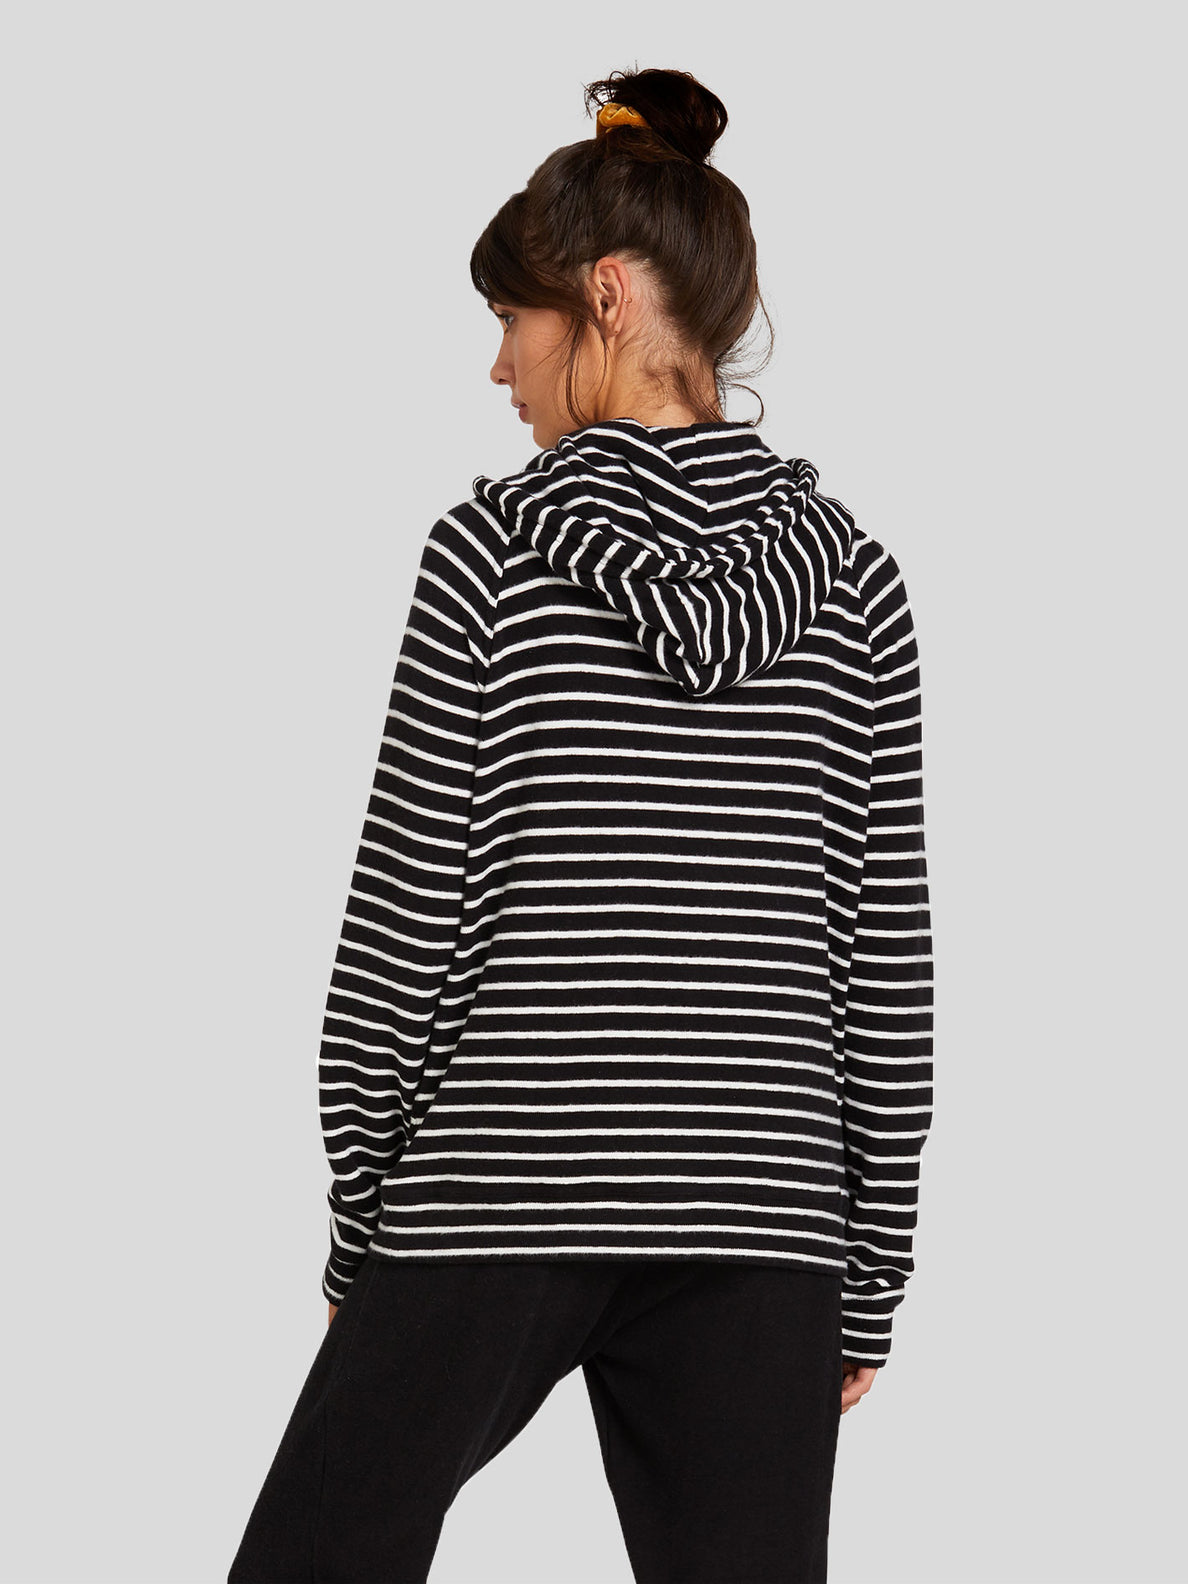 Lived In Lounge Hoodie - Black/White